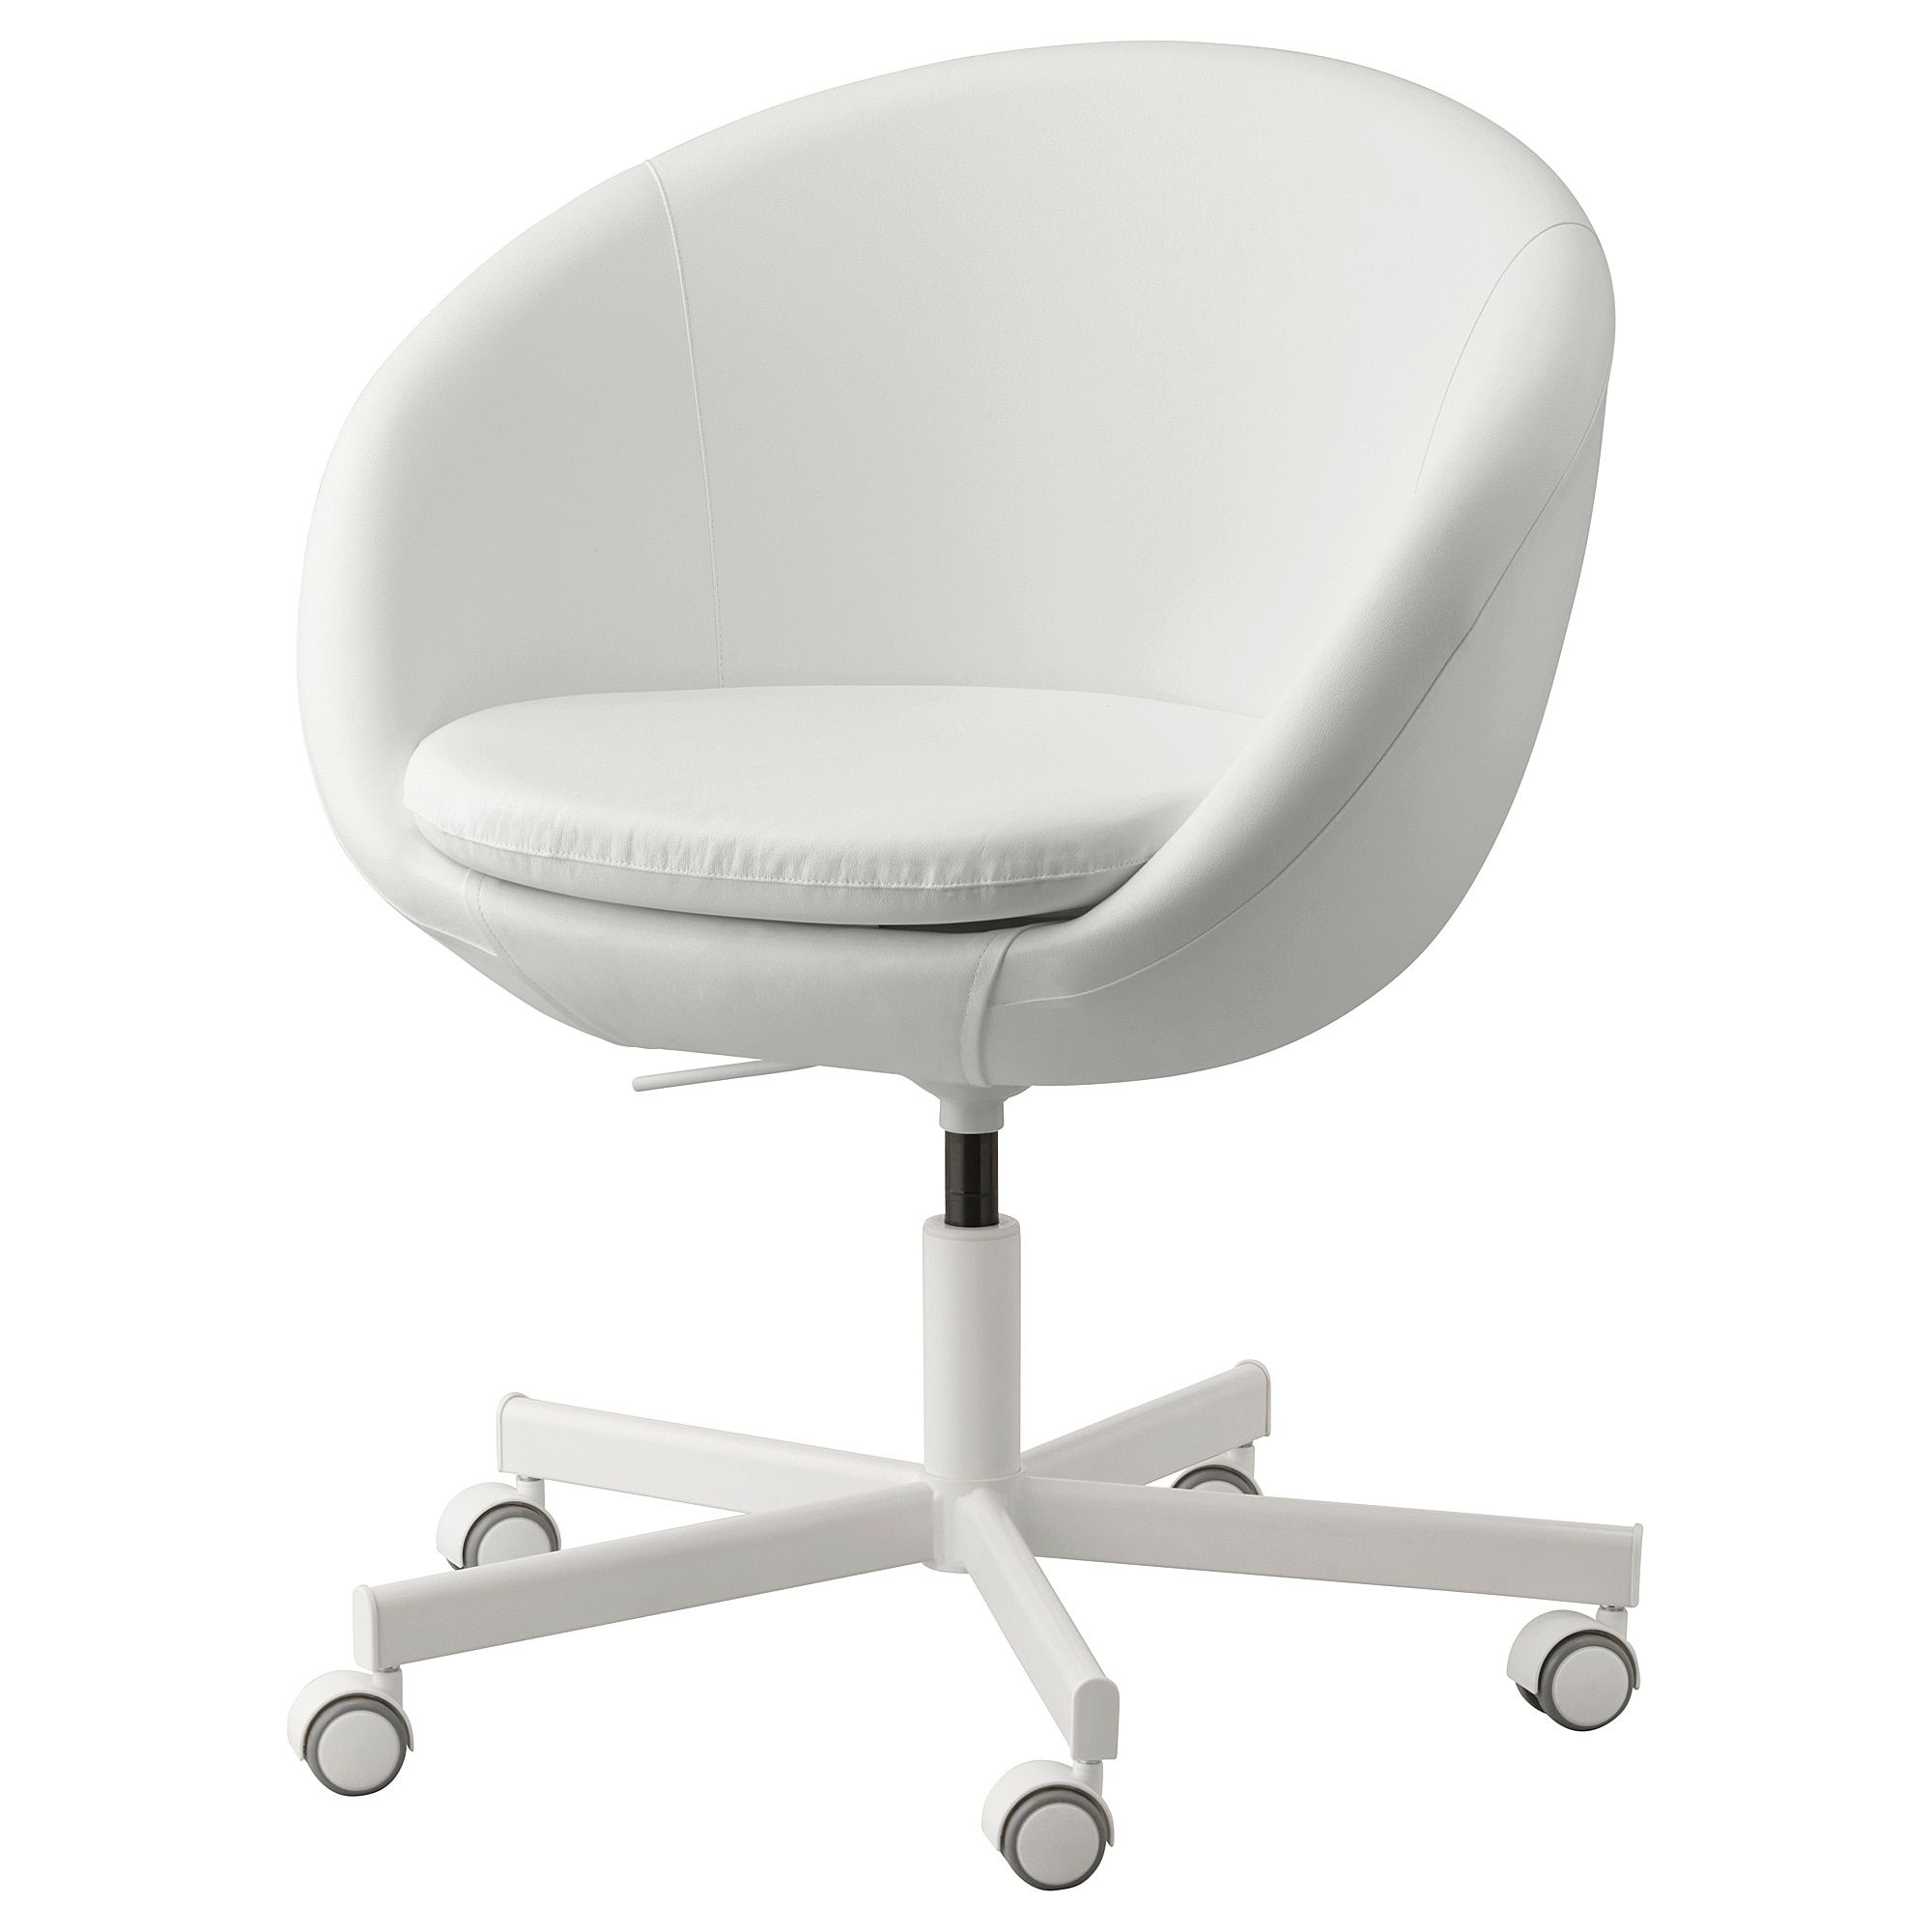 SKRUVSTA Swivel chair Ysane white in 2020 | Swivel chair